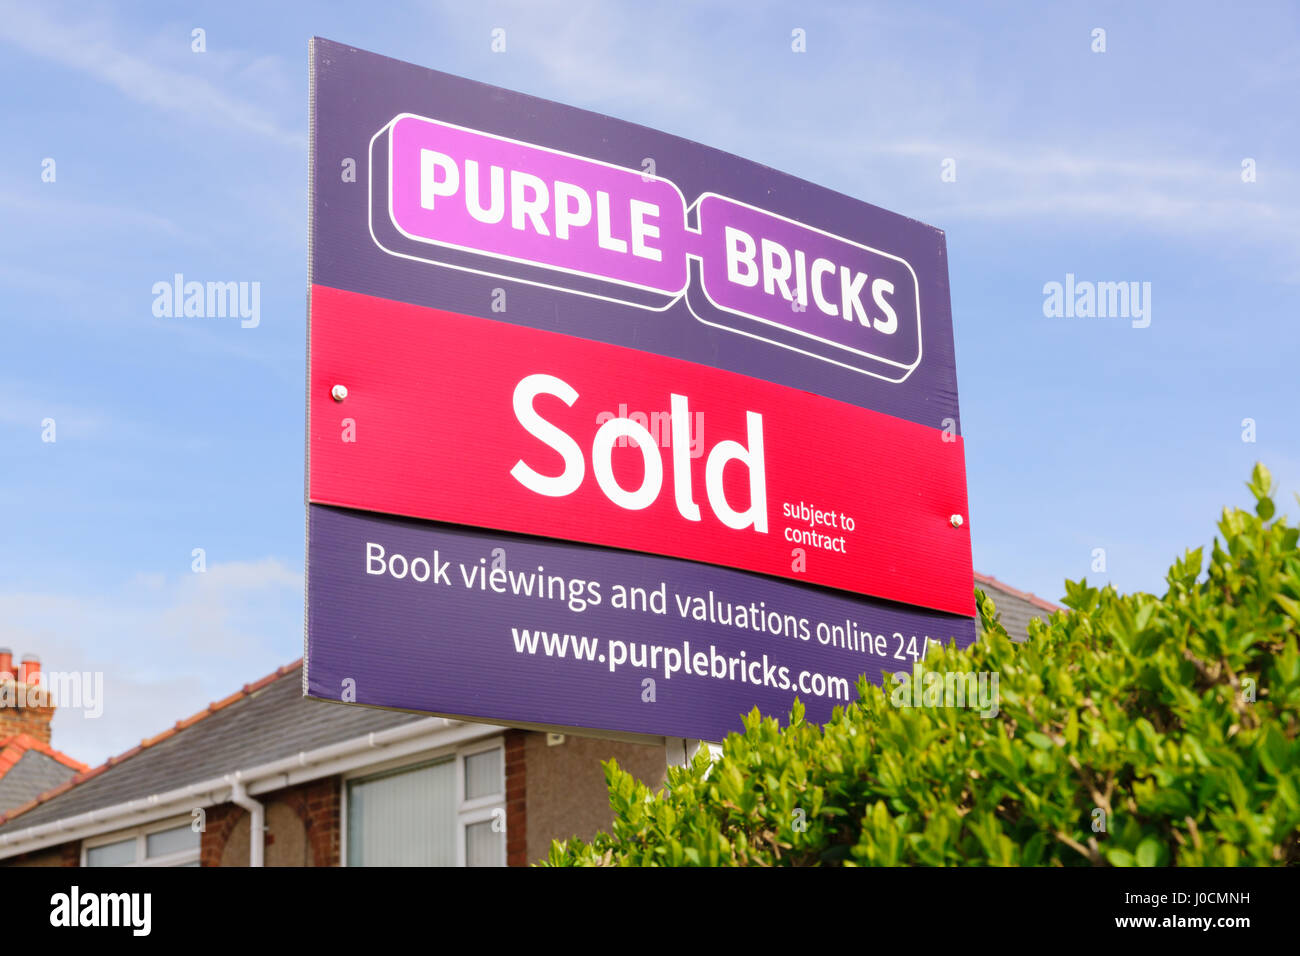 Purple Bricks Group PLC estate agents sold sign the company is the UKs first online property agent launched in 2014 - Stock Image